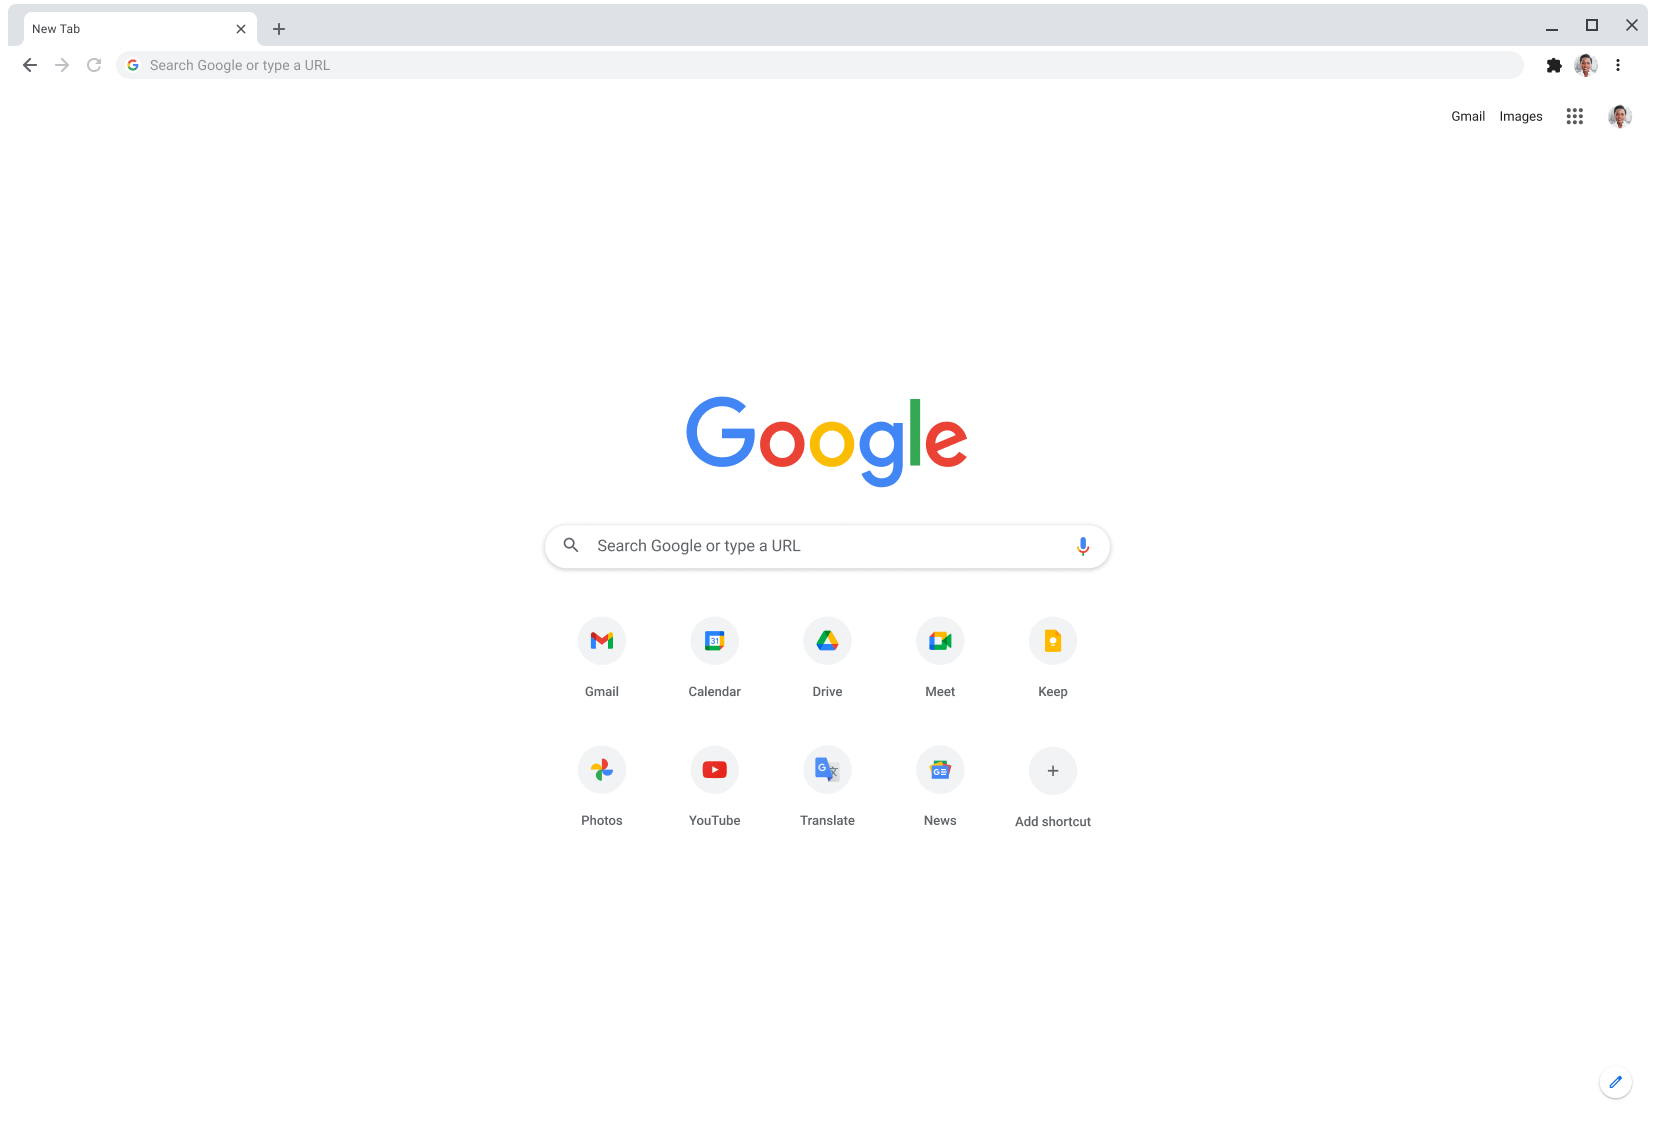 Chrome browser window displaying Google.com.